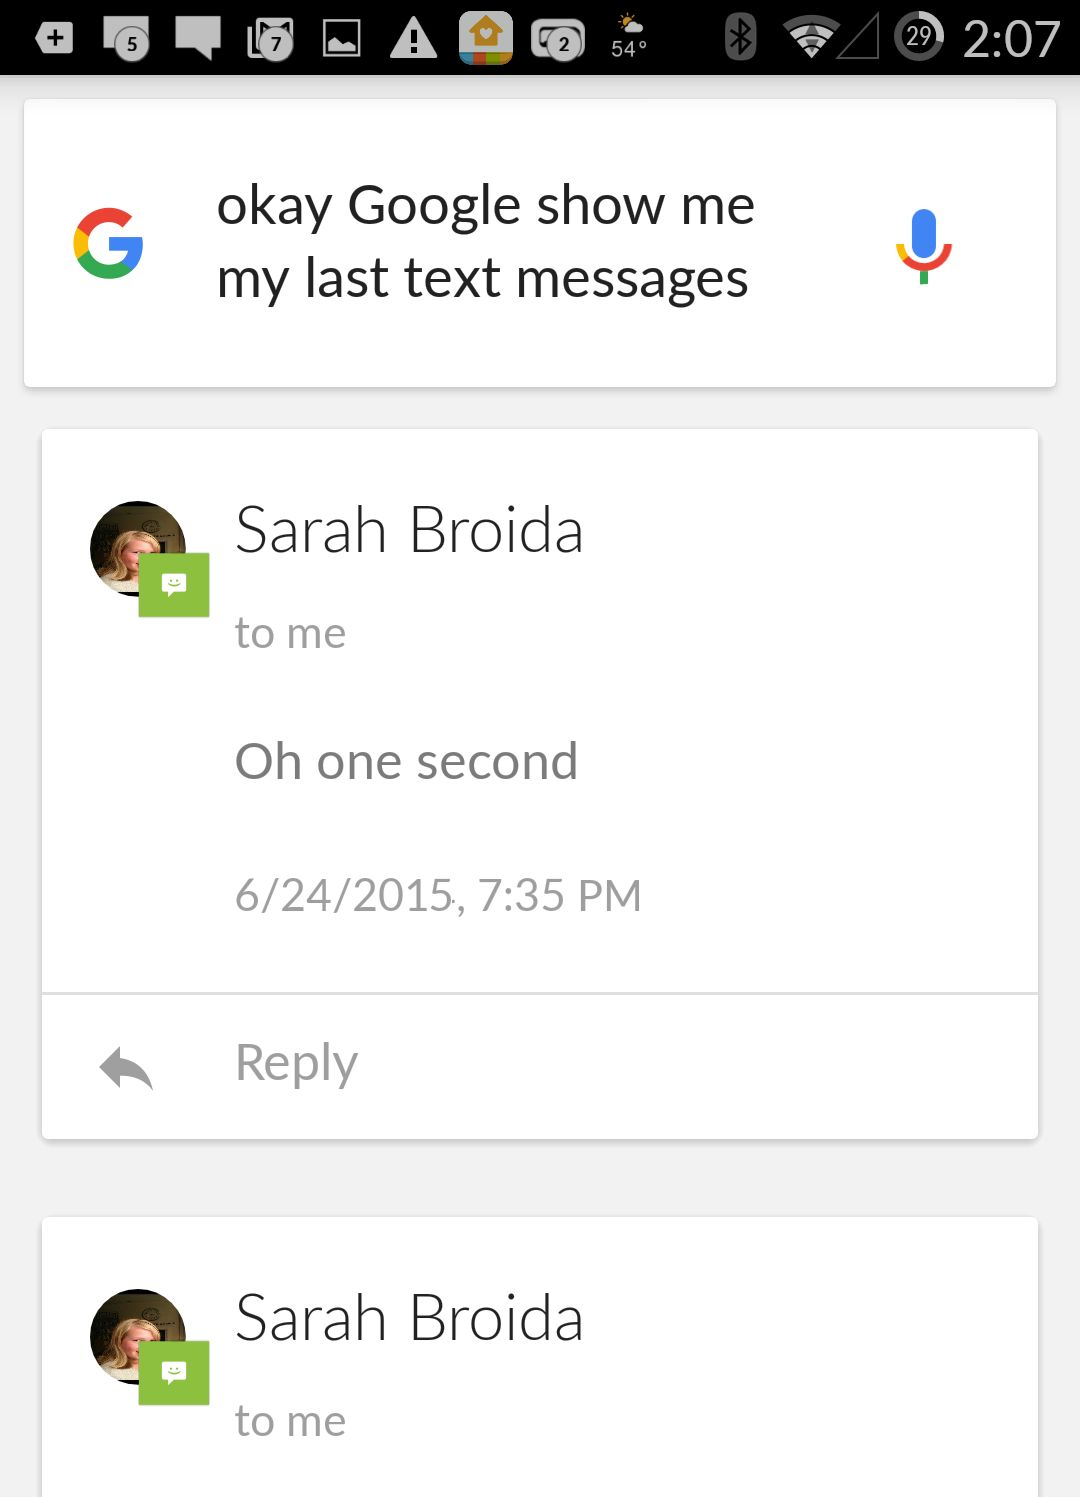 google-now-show-me-my-text-messages.jpg